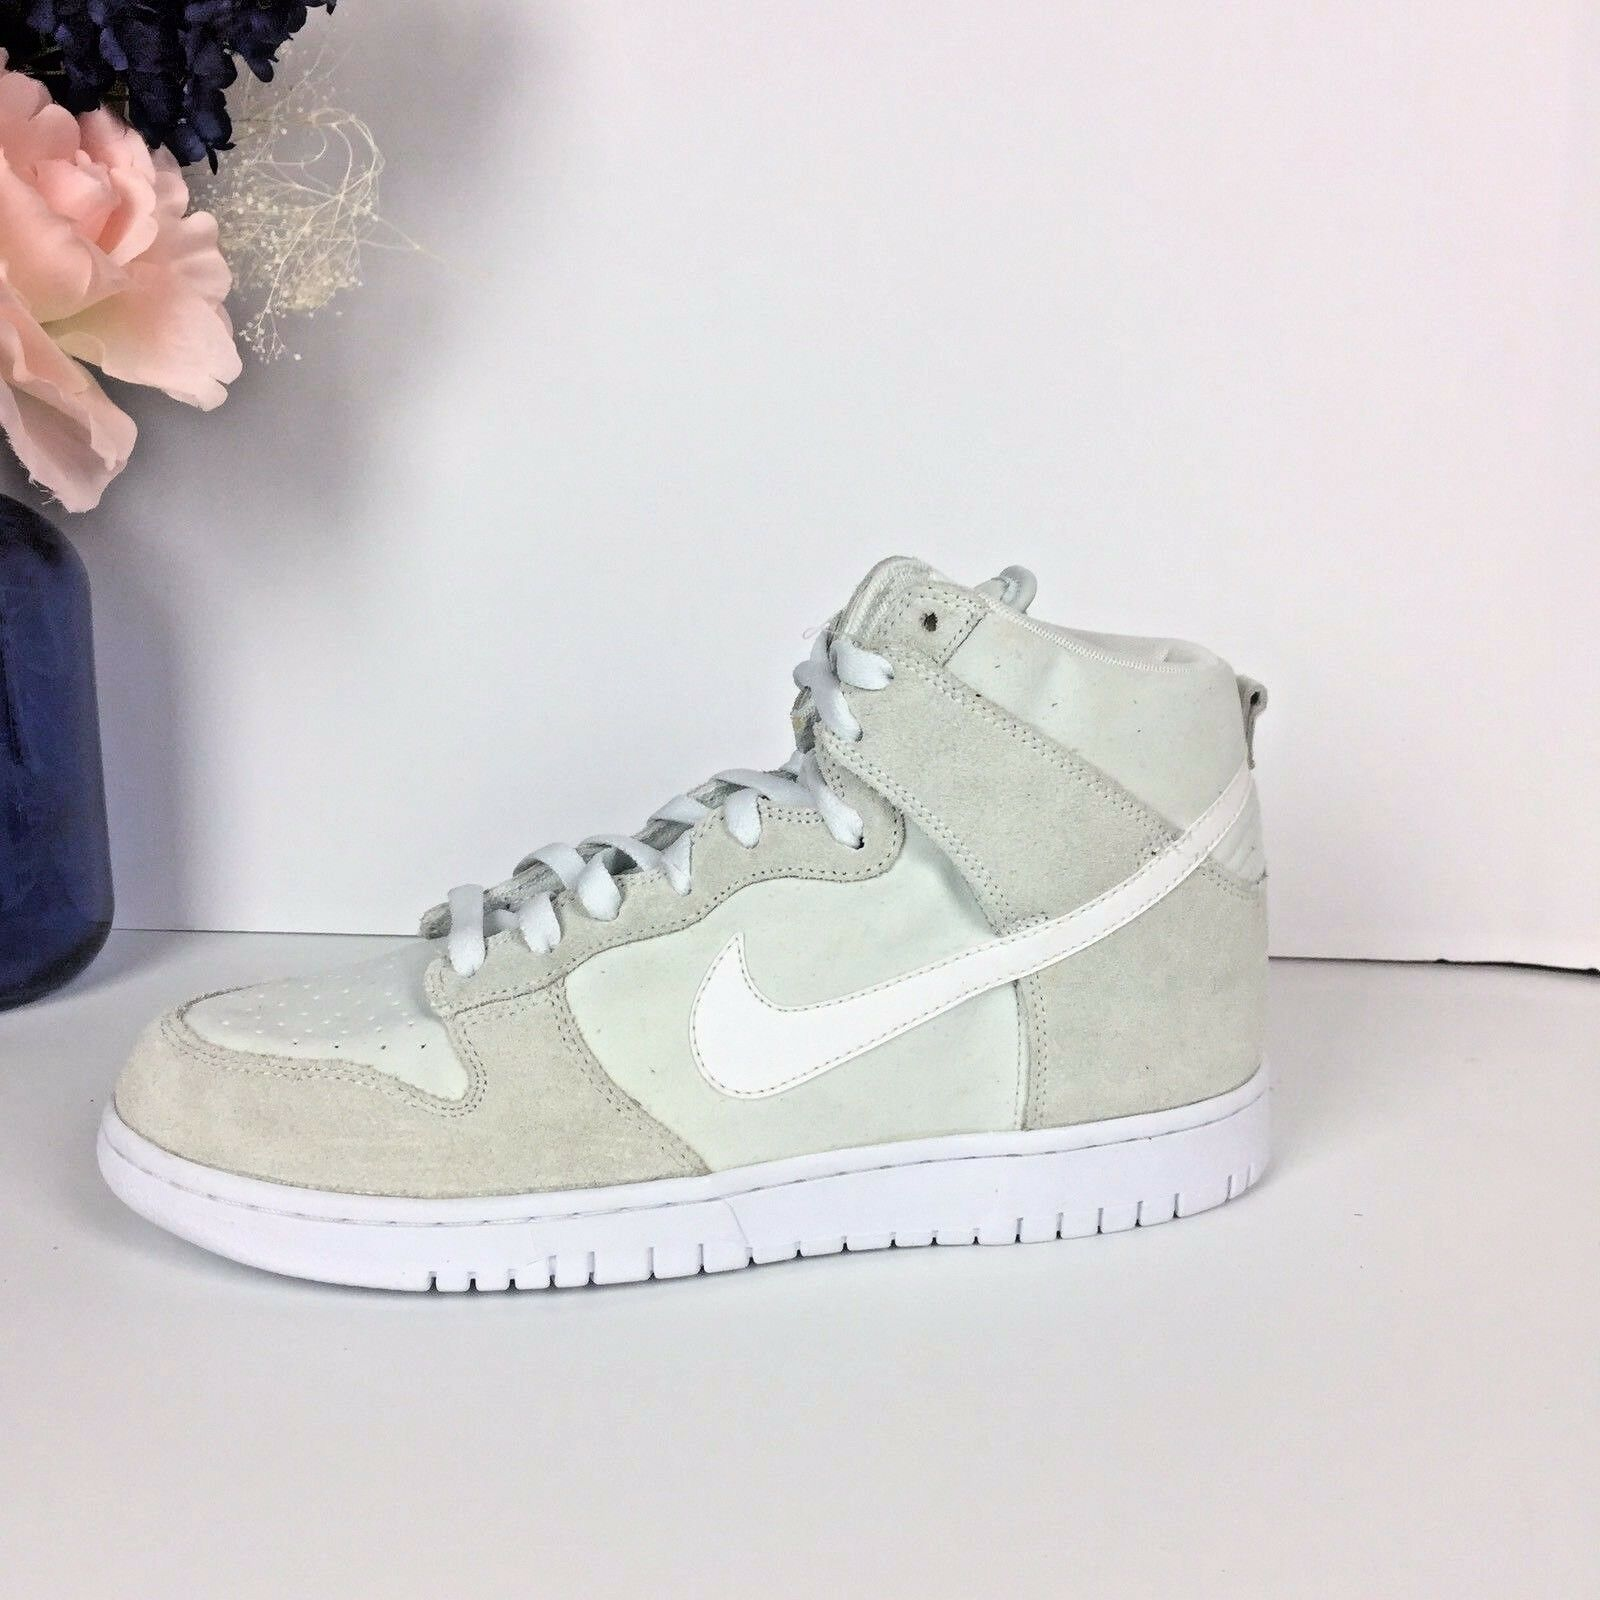 Nike Dunk Hi - Men's Off White White 904233100 Sneakers High Top Basketball